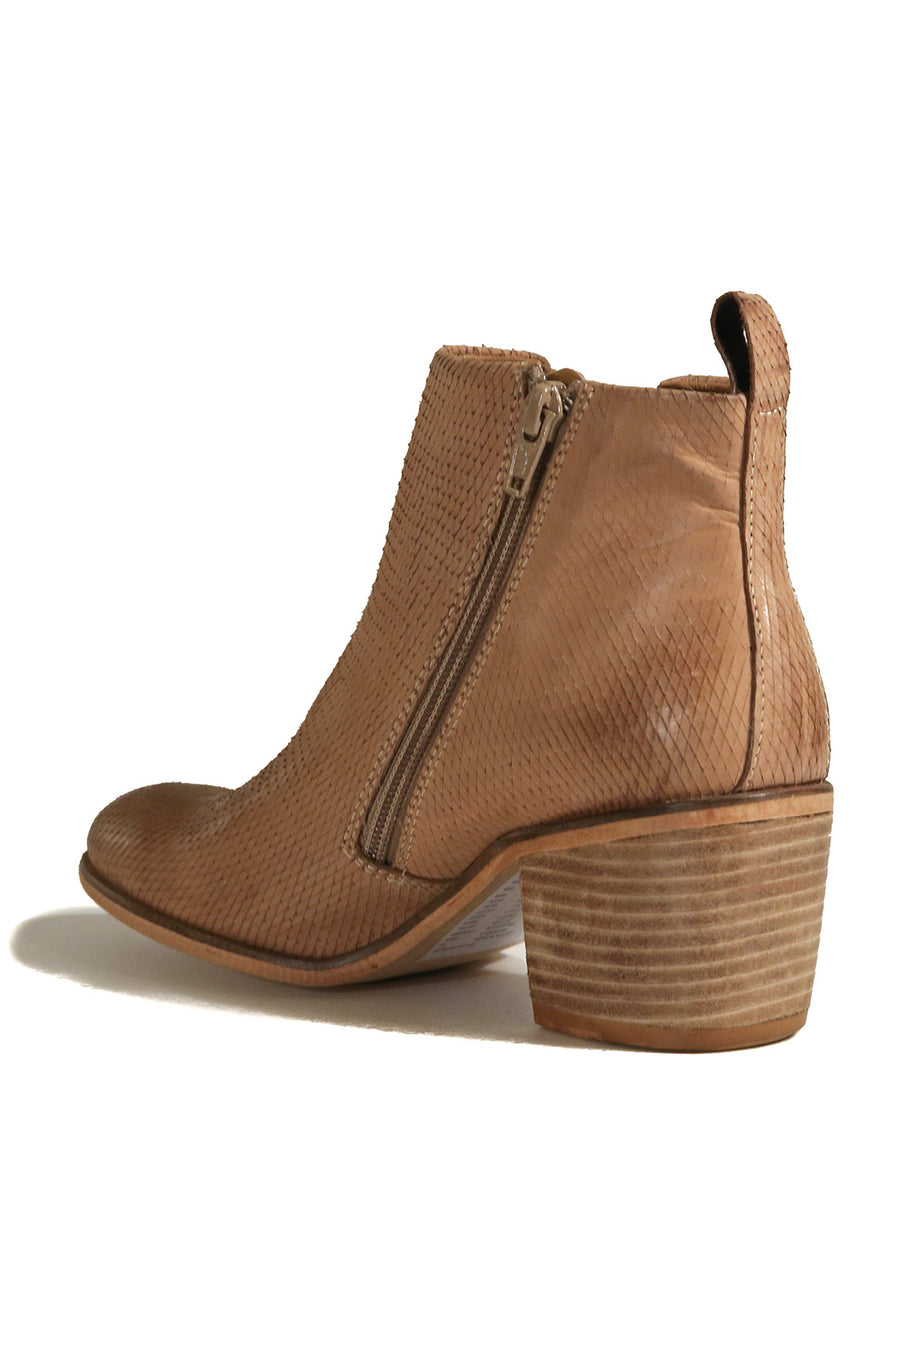 Oslo Tan Snake Effect Leather Boot Front